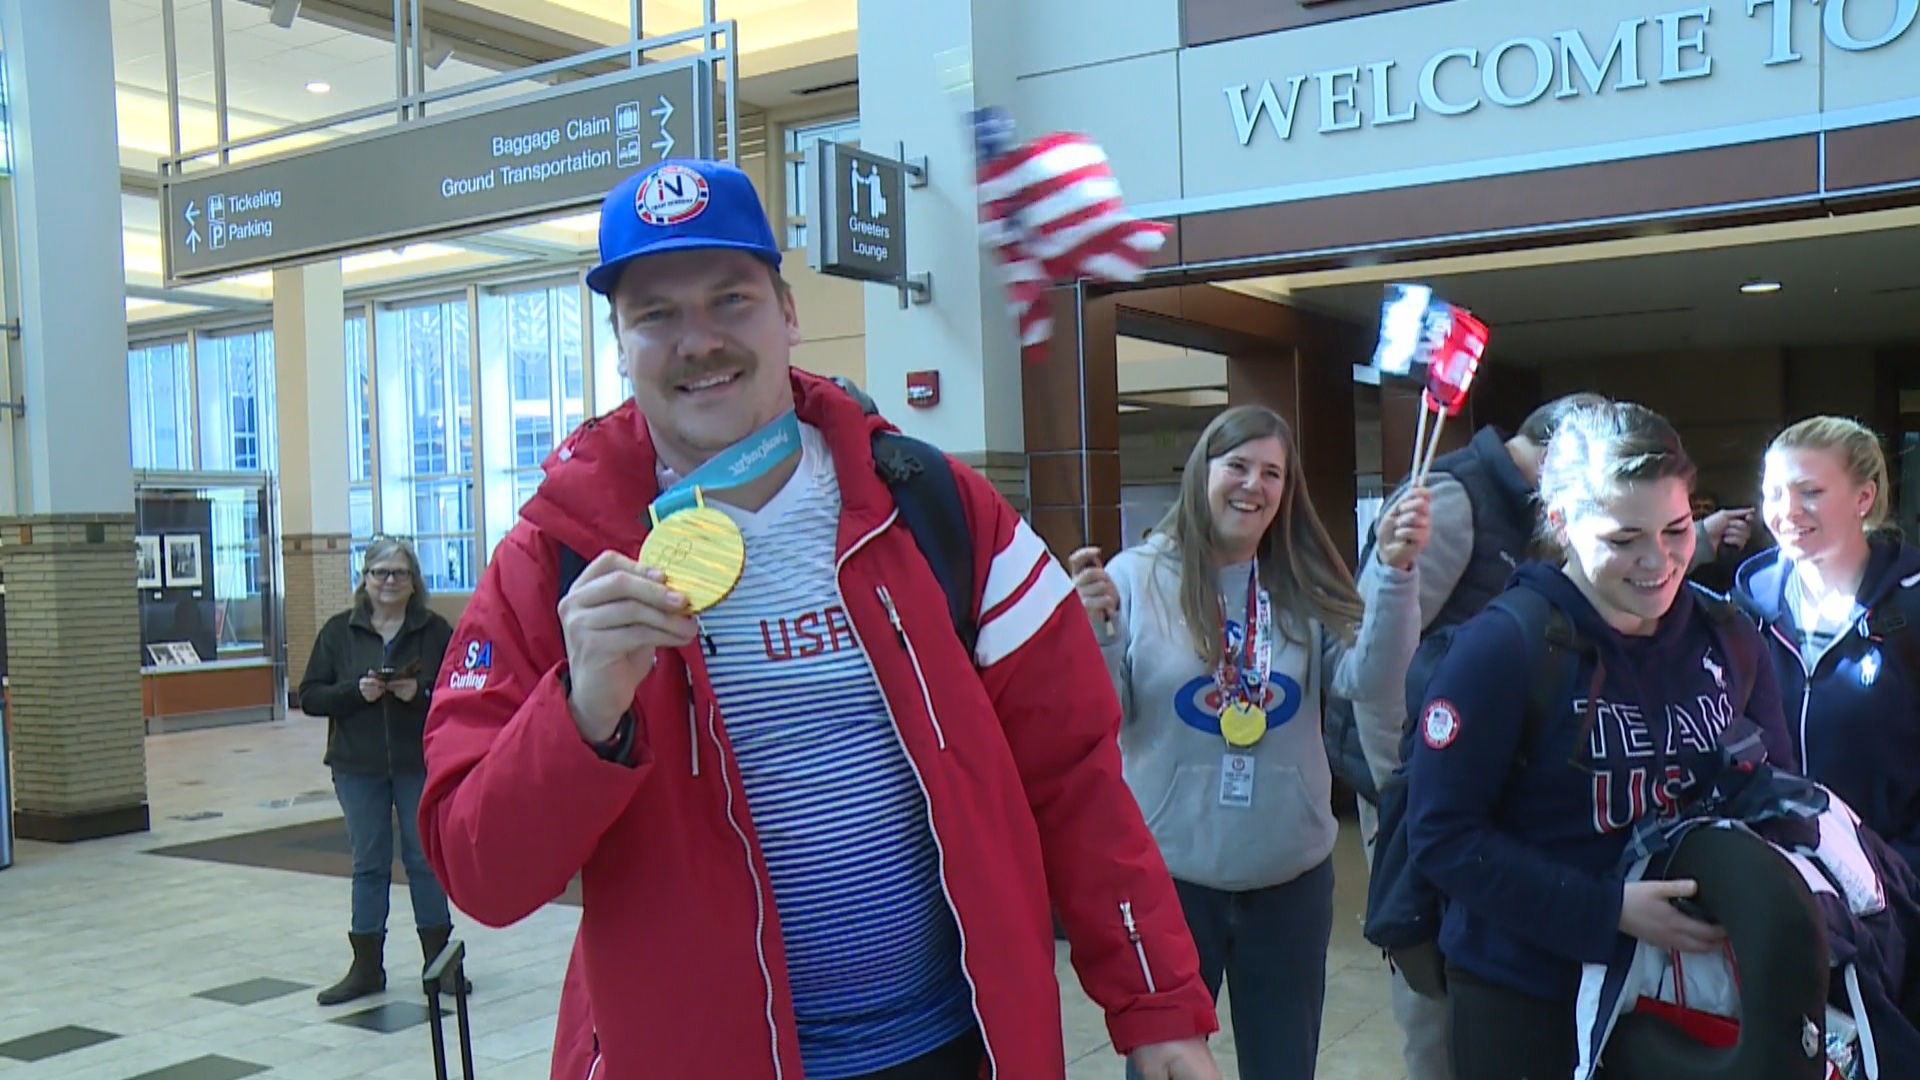 Matt Hamilton returns home to Madison after winning a gold medal in the Winter Olympics for curling in South Korea, February 26, 2018. (WMTV)